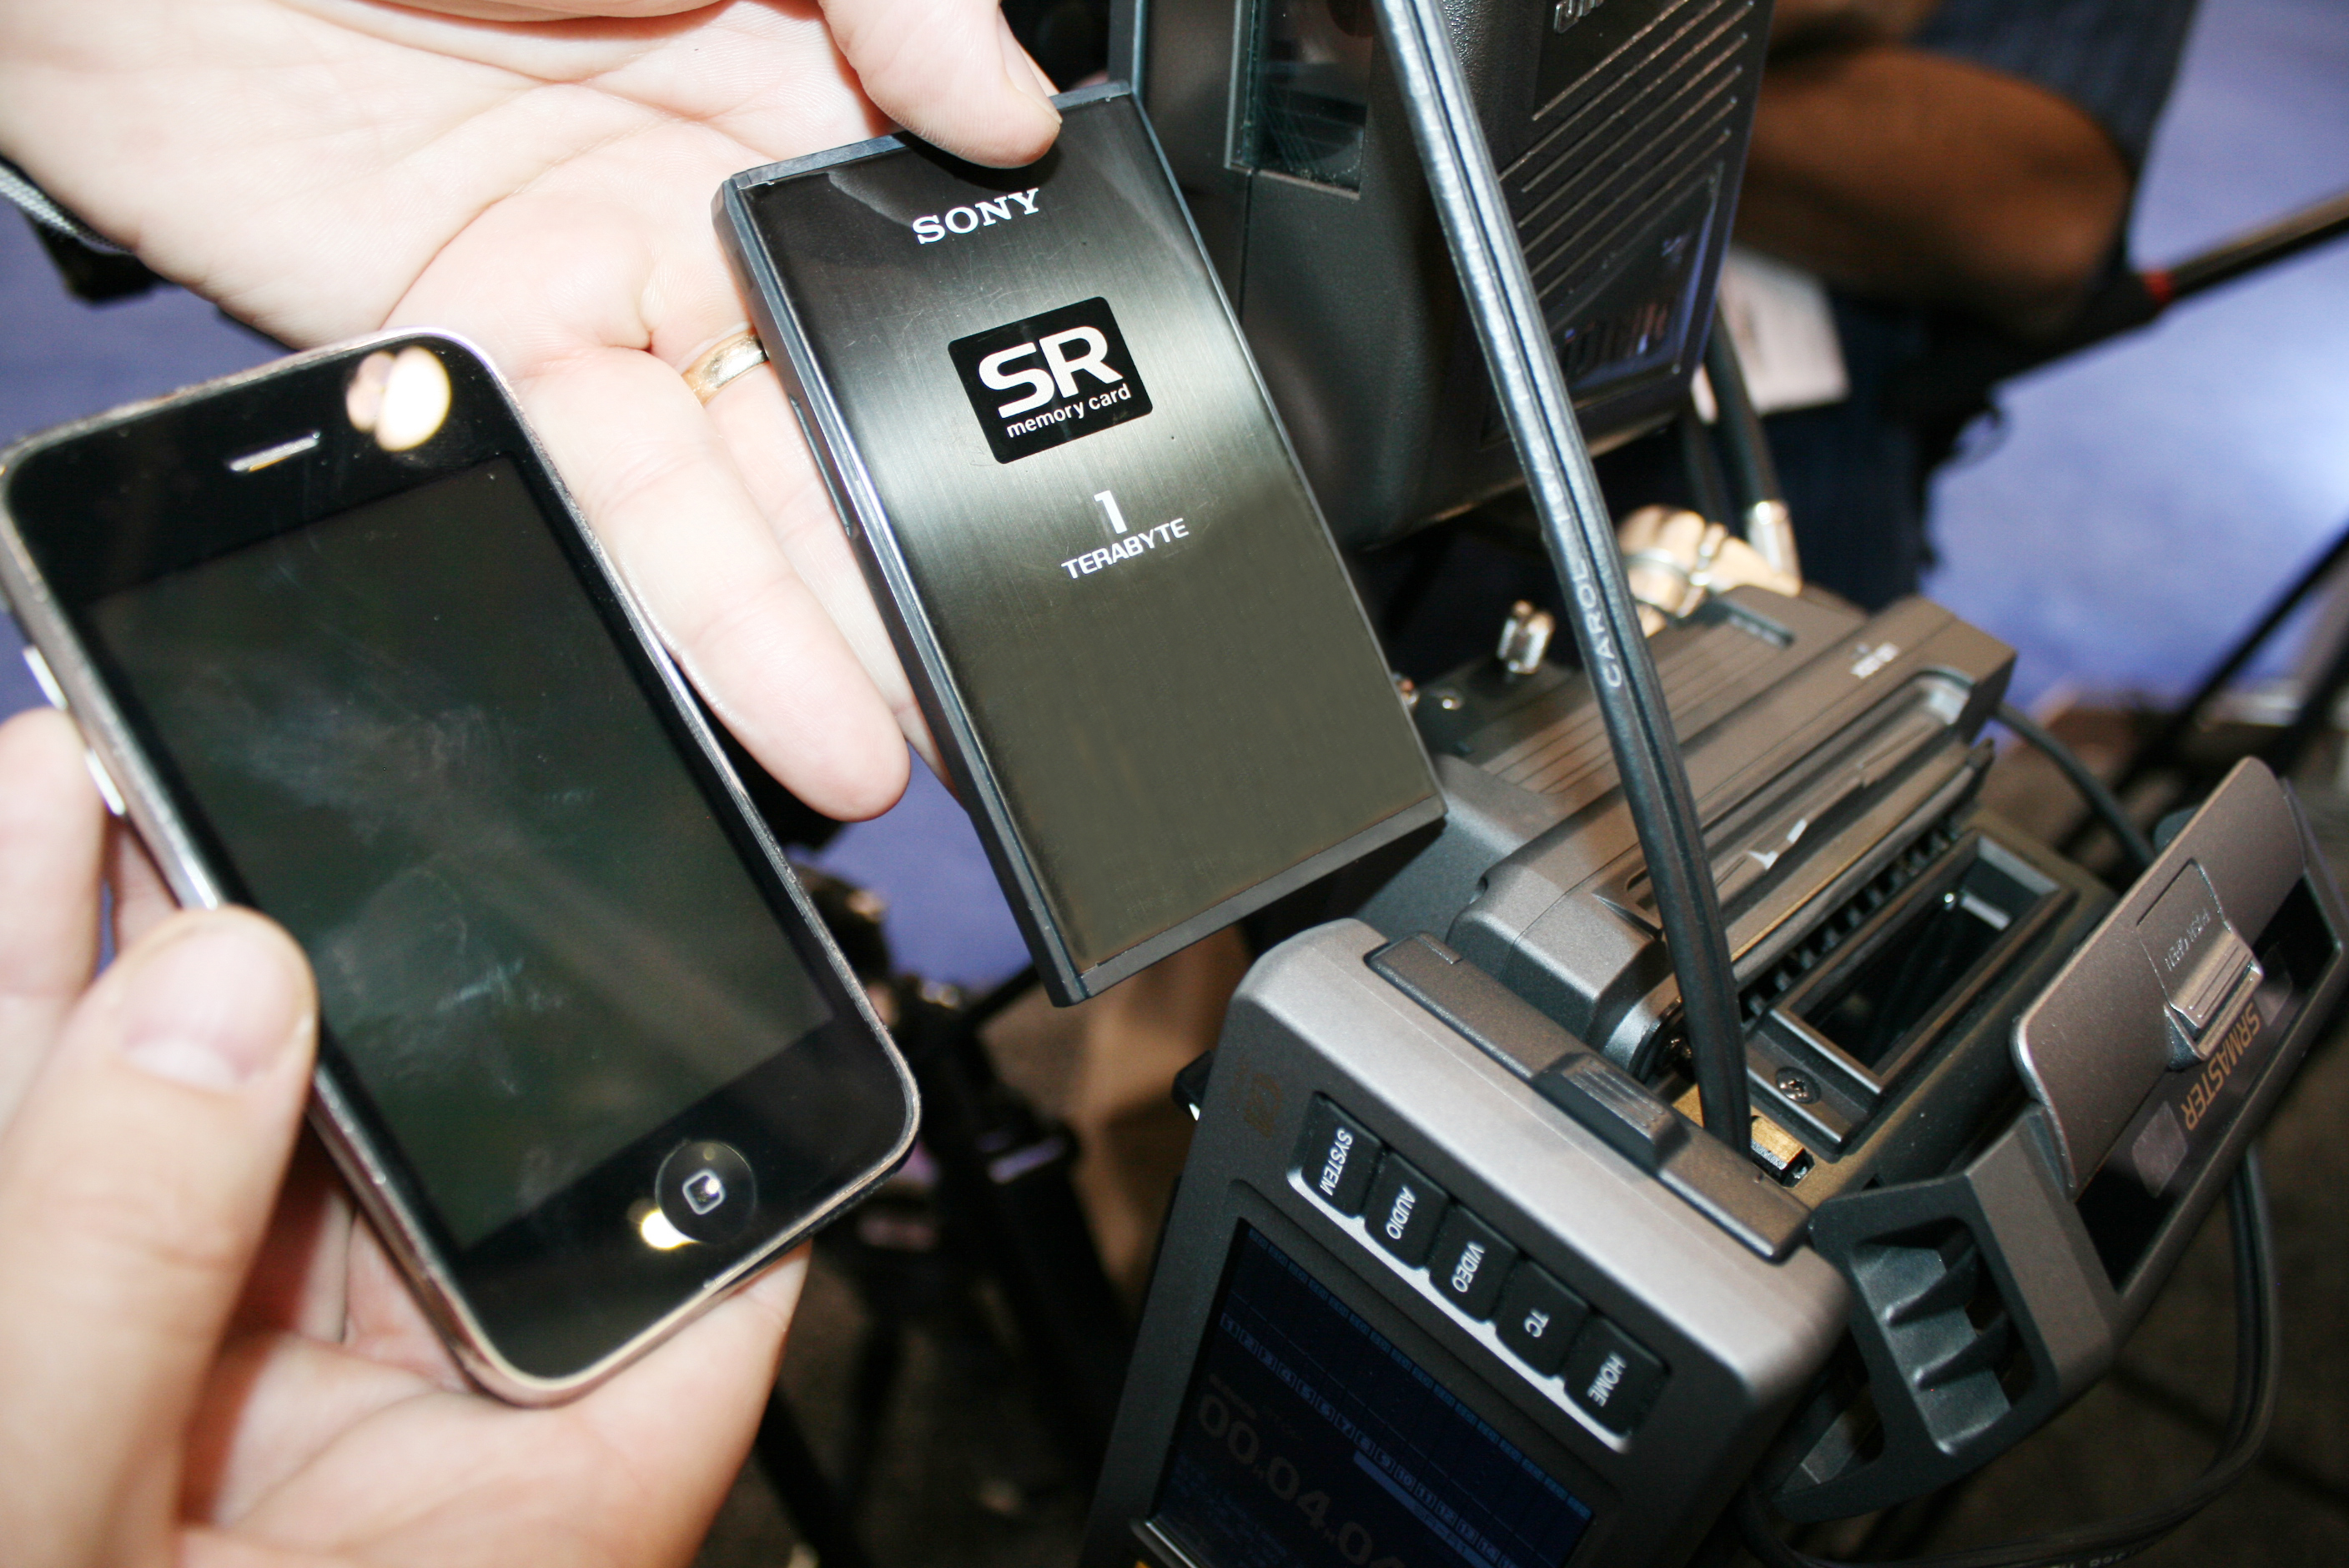 Sony 1TB SRMemory card compared to iPhone. At right is SRMemory companion recorder for Sony PMW-F3.